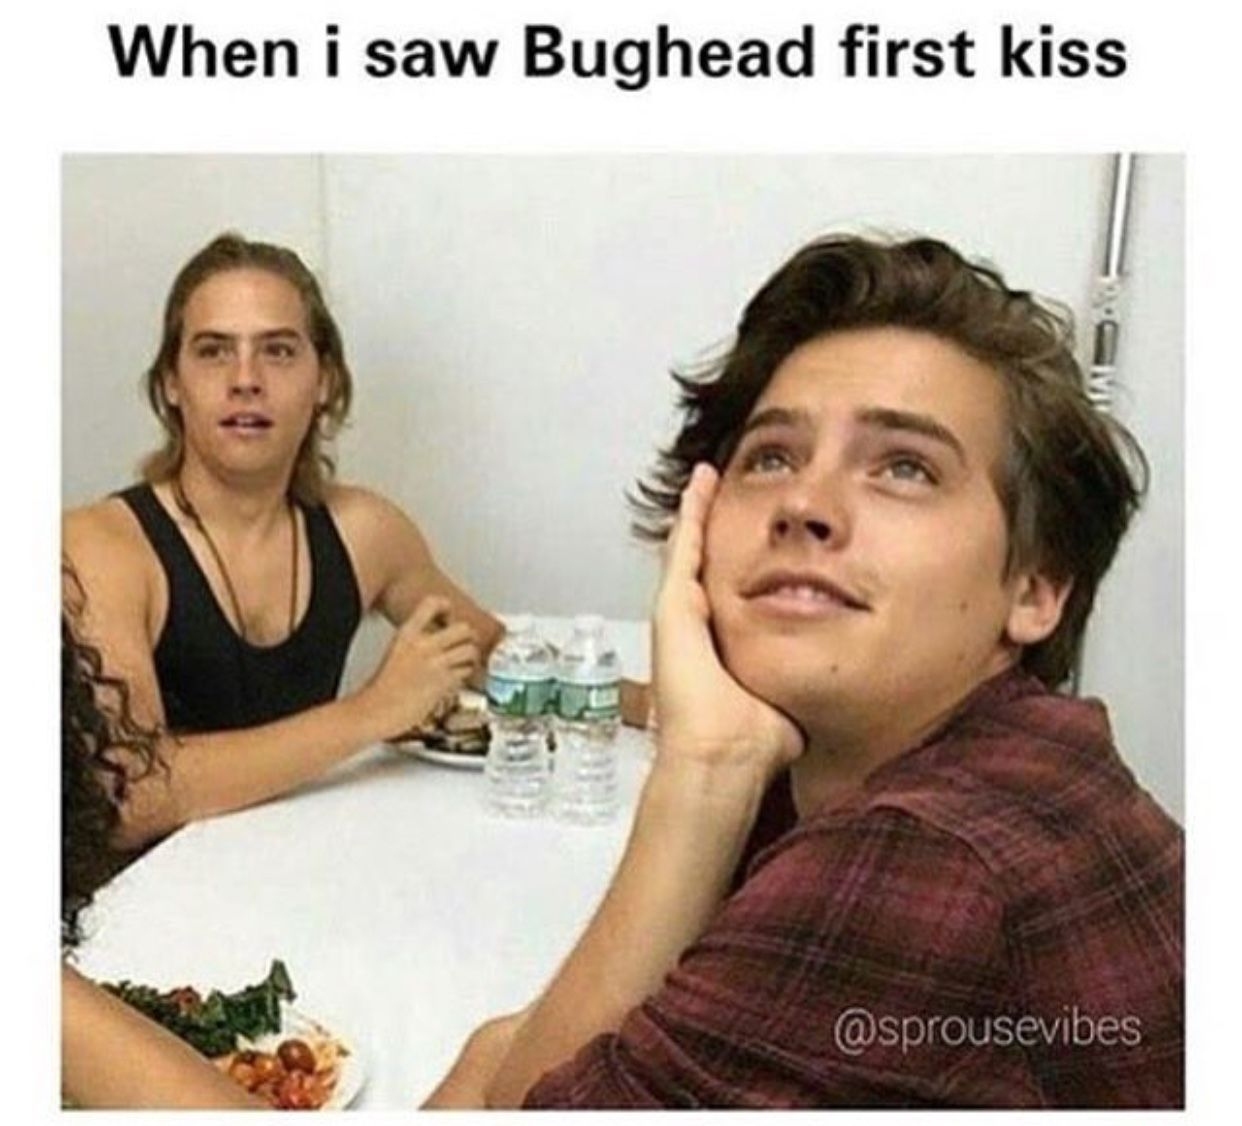 Ajatsge4bdhhh #coleanddylansprouse